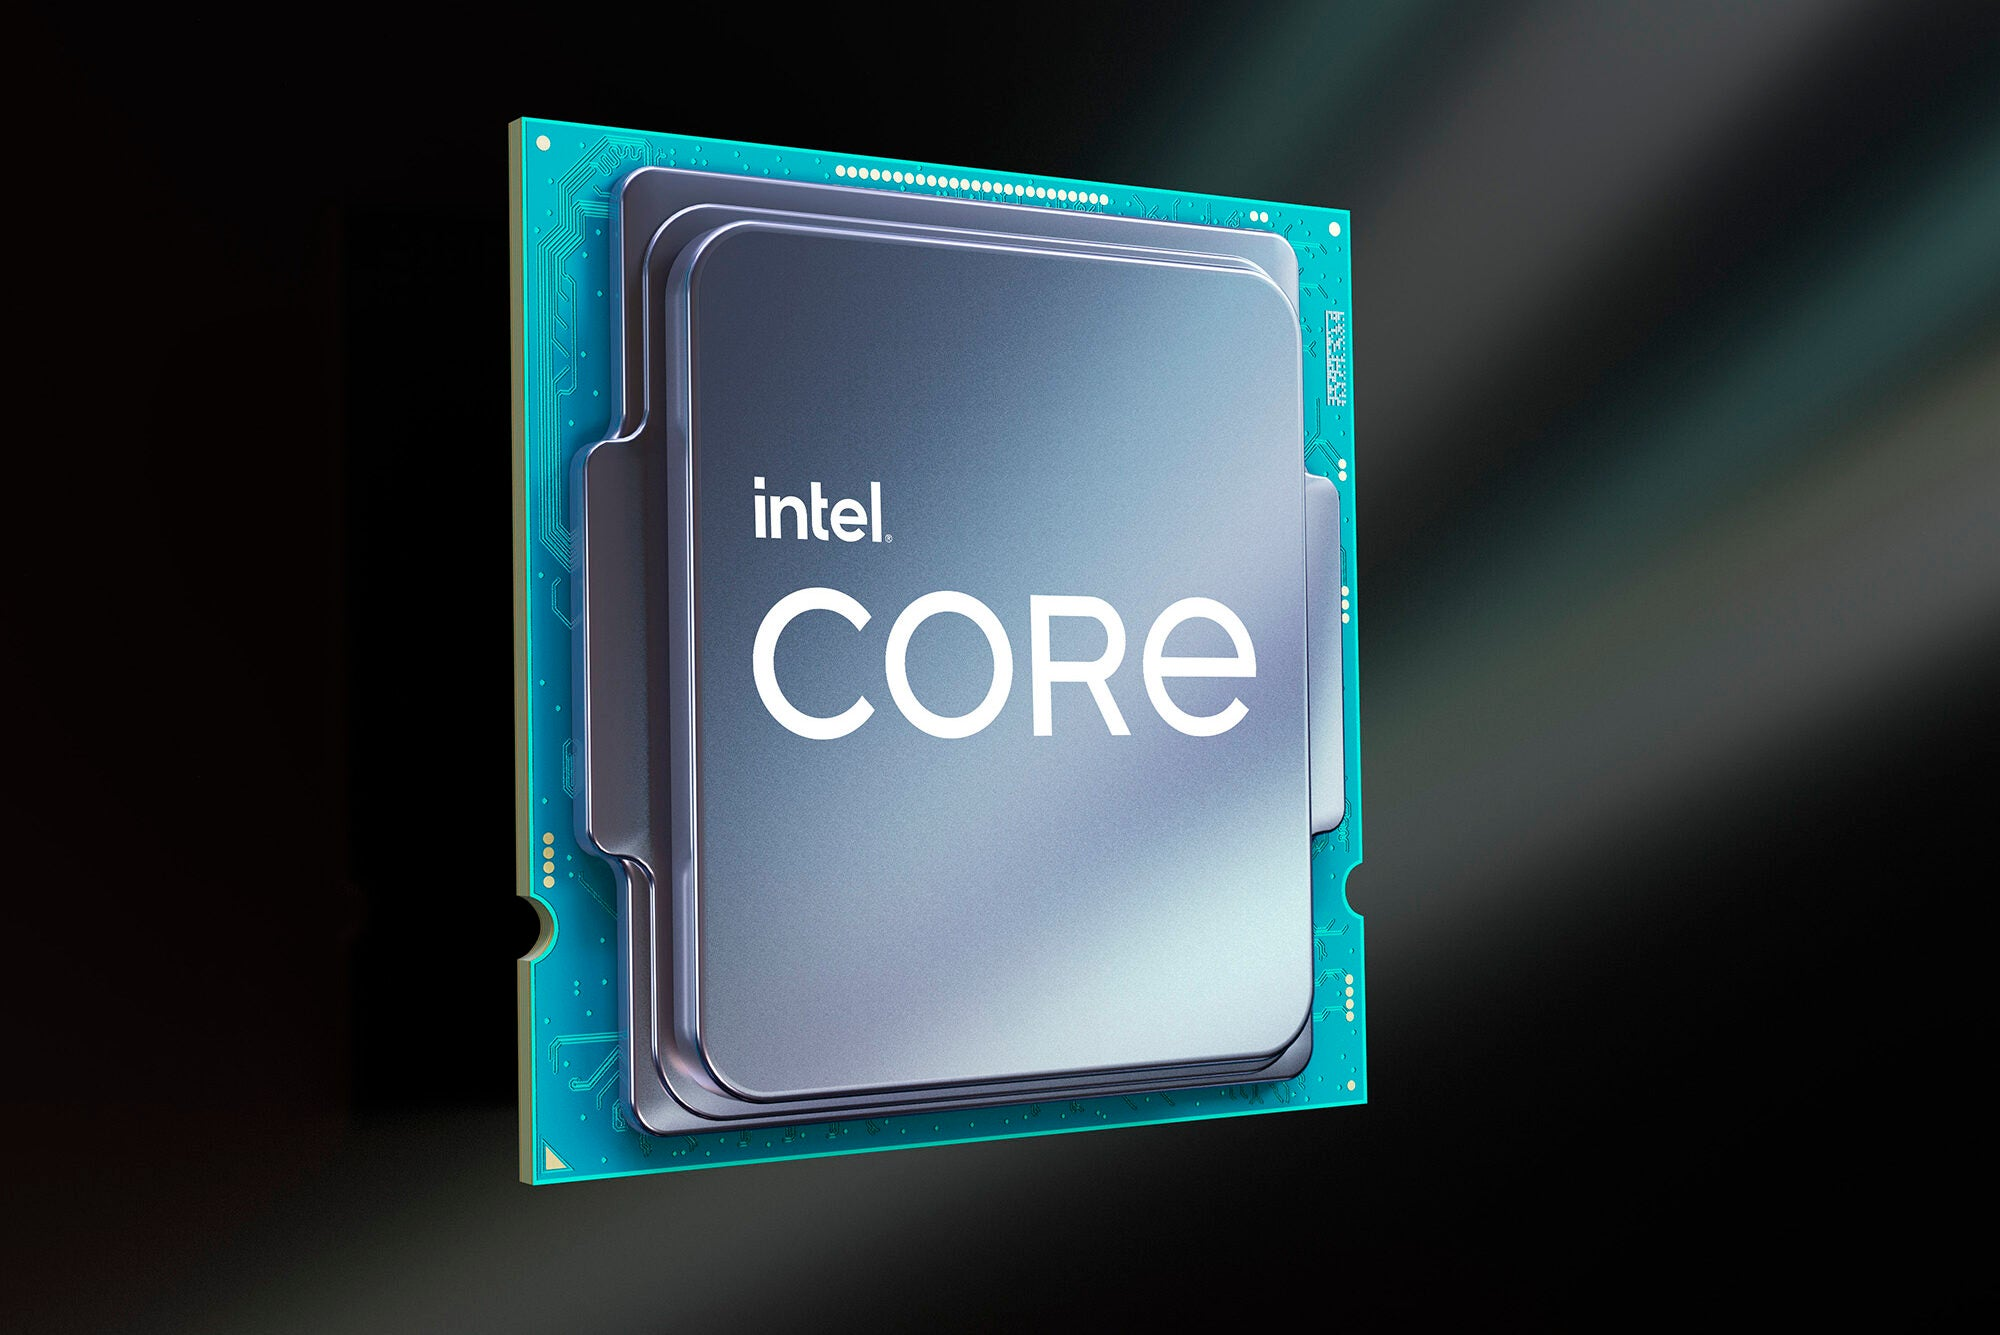 Intel Tiger Lake launch window revealed by HP